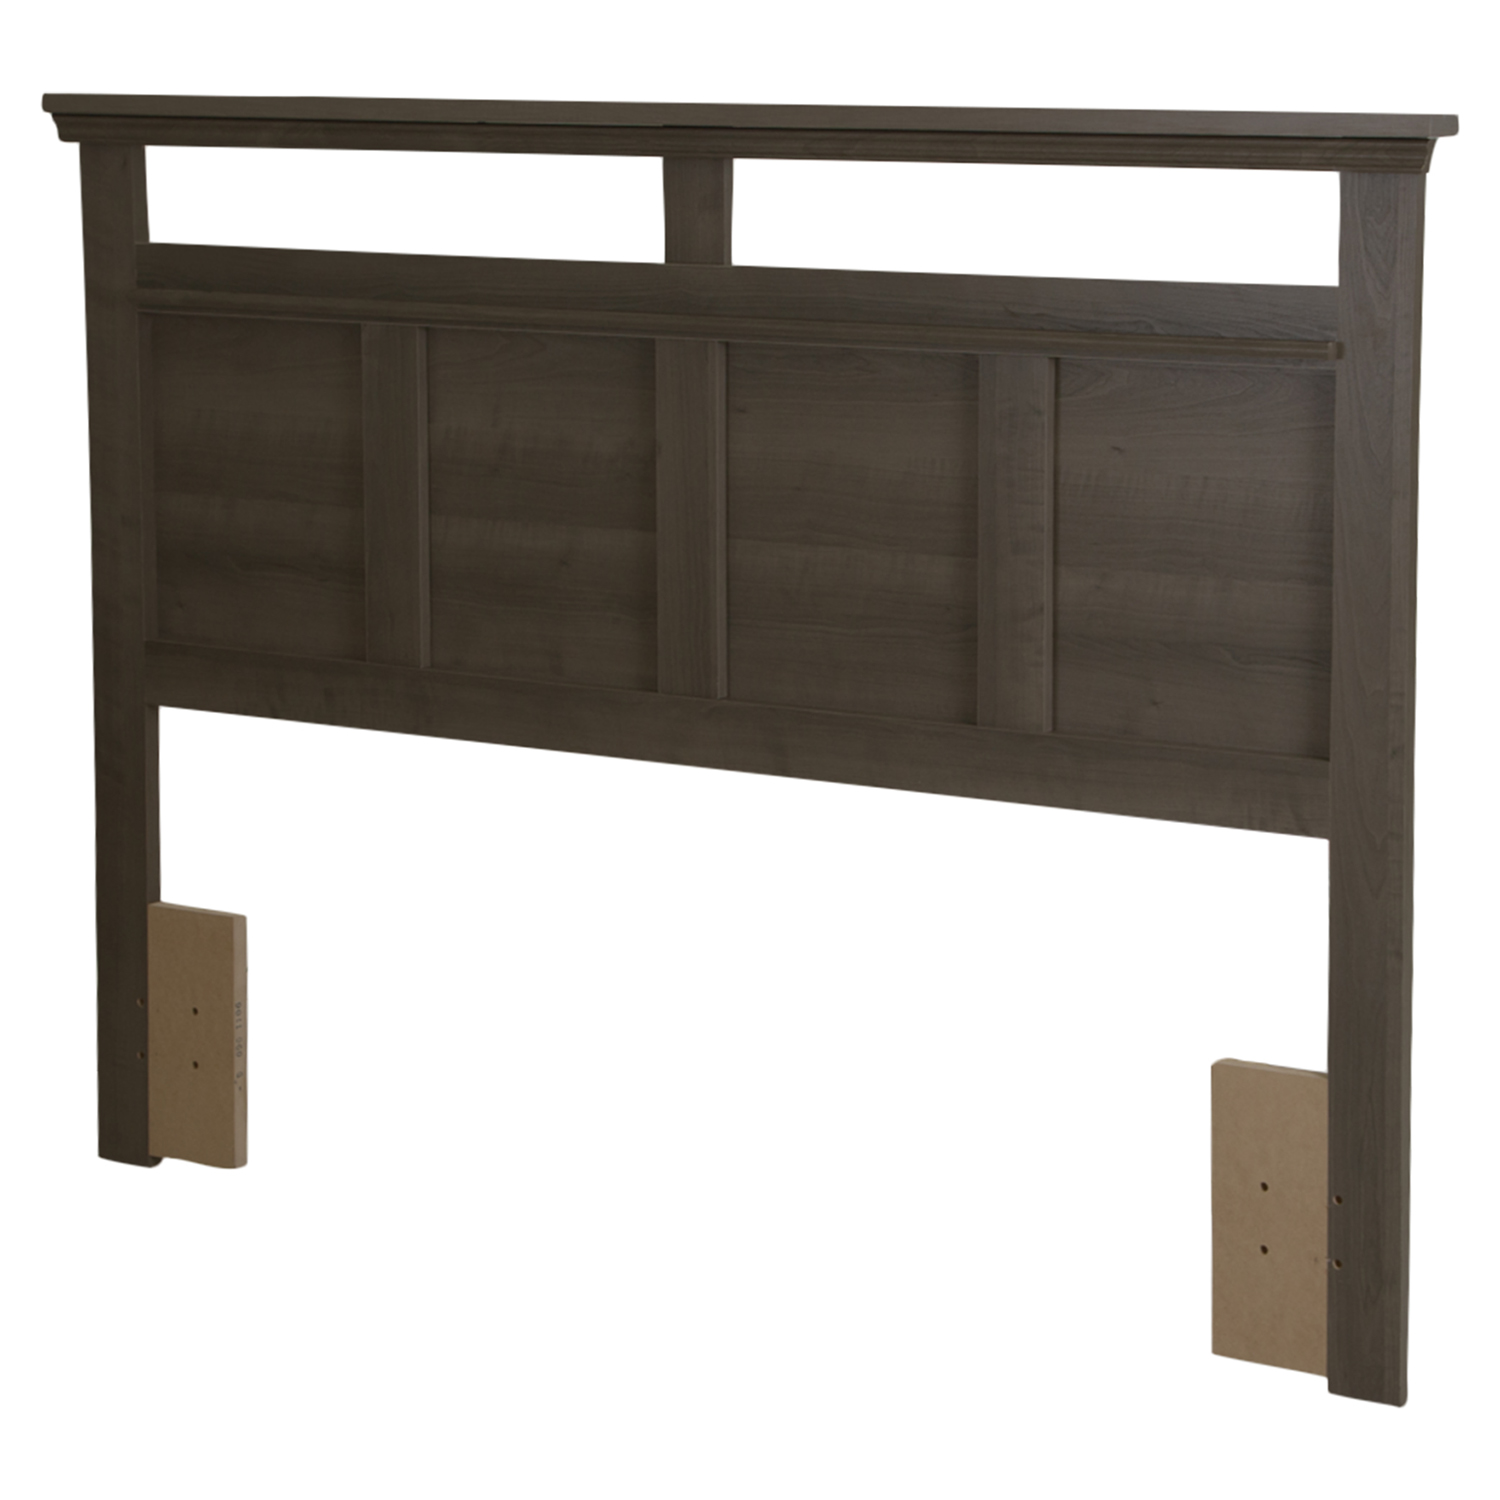 Versa Full/Queen Headboard - Gray Maple - SS-9041256